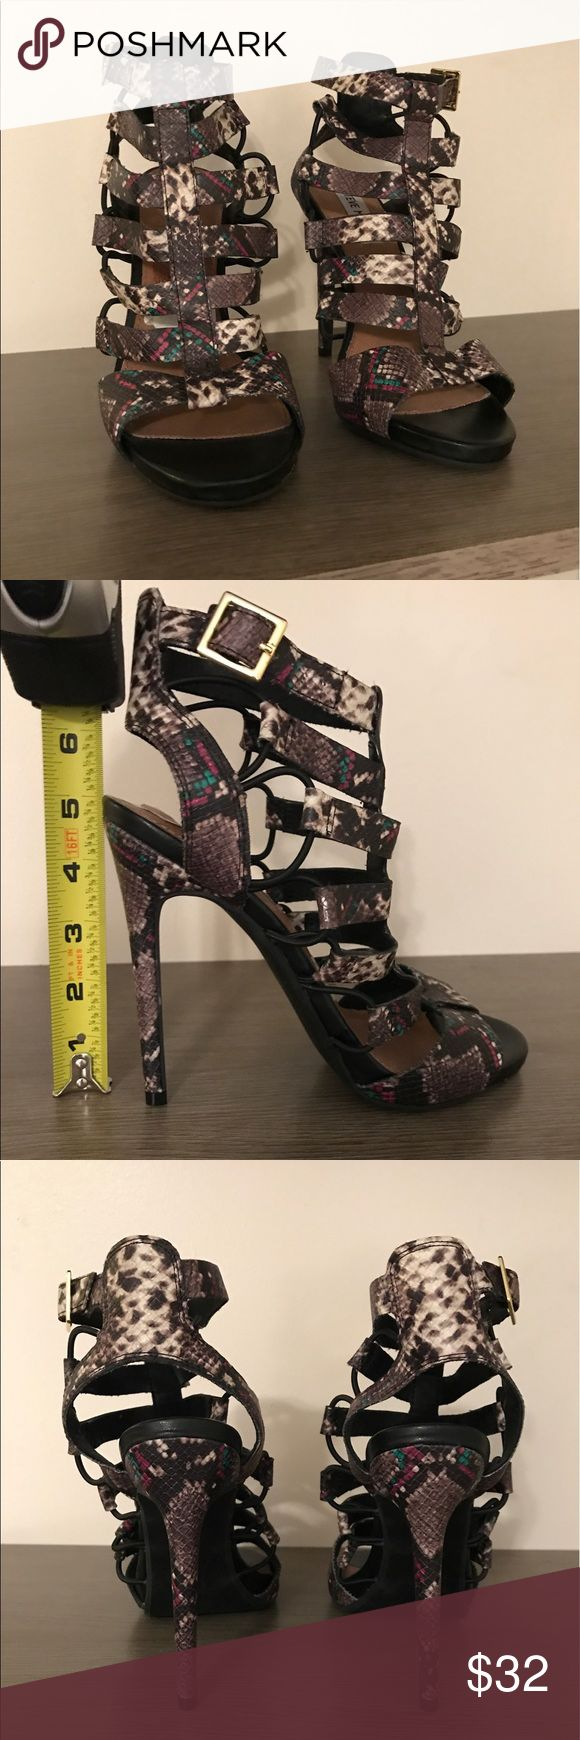 Steve Madden High Heel Cage Sandal *New* without box, super sexy, high heel, caged, snake skin sandal by Steve Madden. These are a size 7 1/2 and fit true to size. Steve Madden Shoes Heels